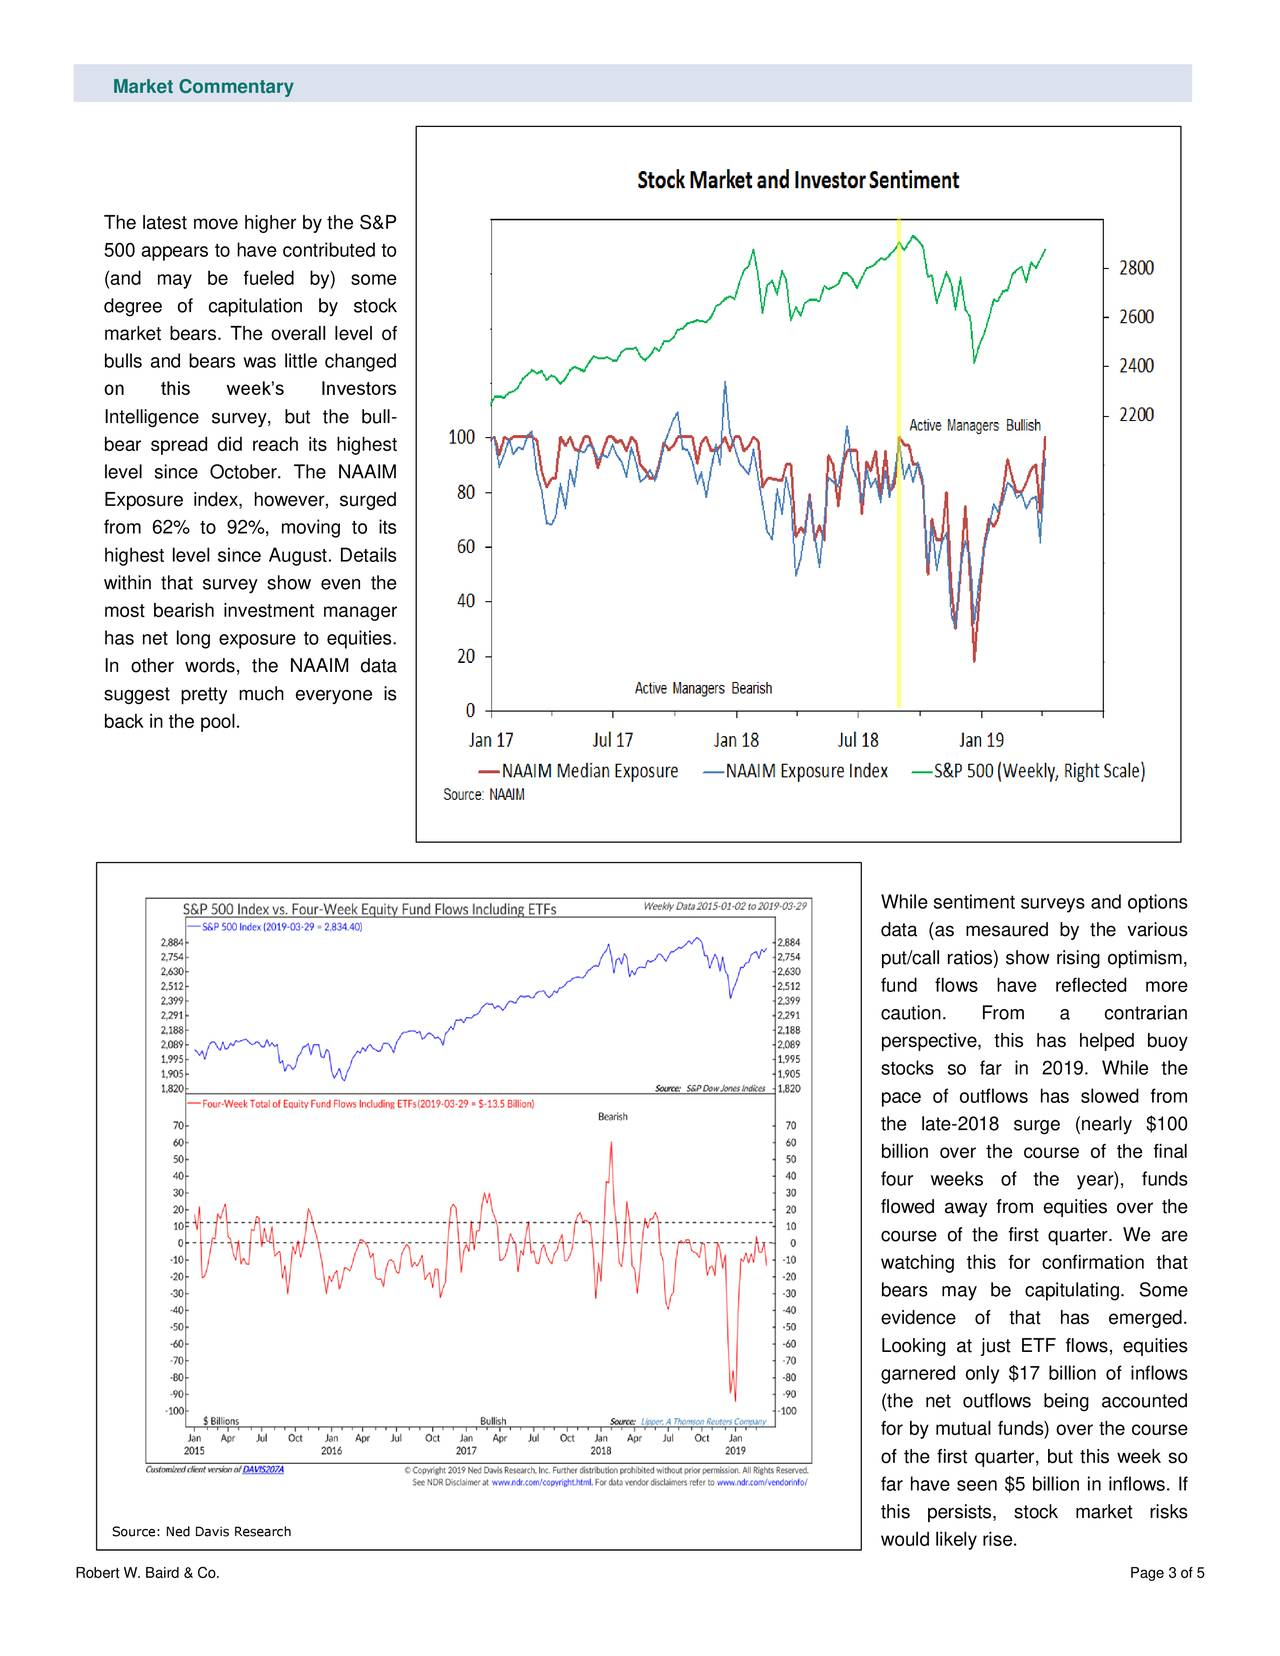 The latest move higher by the S&P 500 appears to have contributed to (and may be fueled by) some degree of capitulation by stock market bears. The overall level of bulls and bears was little changed on this week's Investors Intelligence survey, but the bull- bear spread did reach its highest level since October. The NAAIM Exposure index, however, surged from 62% to 92%, moving to its highest level since August. Details within that survey show even the most bearish investment manager has net long exposure to equities. In other words, the NAAIM data suggest pretty much everyone is back in the pool. While sentiment surveys and options data (as mesaured by the various put/call ratios) show rising optimism, fund flows have reflected more caution. From a contrarian perspective, this has helped buoy stocks so far in 2019. While the pace of outflows has slowed from the late-2018 surge (nearly $100 billion over the course of the final four weeks of the year), funds flowed away from equities over the course of the first quarter. We are watching this for confirmation that bears may be capitulating. Some evidence of that has emerged. Looking at just ETF flows, equities garnered only $17 billion of inflows (the net outflows being accounted for by mutual funds) over the course of the first quarter, but this week so far have seen $5 billion in inflows. If this persists, stock market risks Source: Ned Davis Research would likely rise. Robert W. Baird & Co. Page 3 of 5